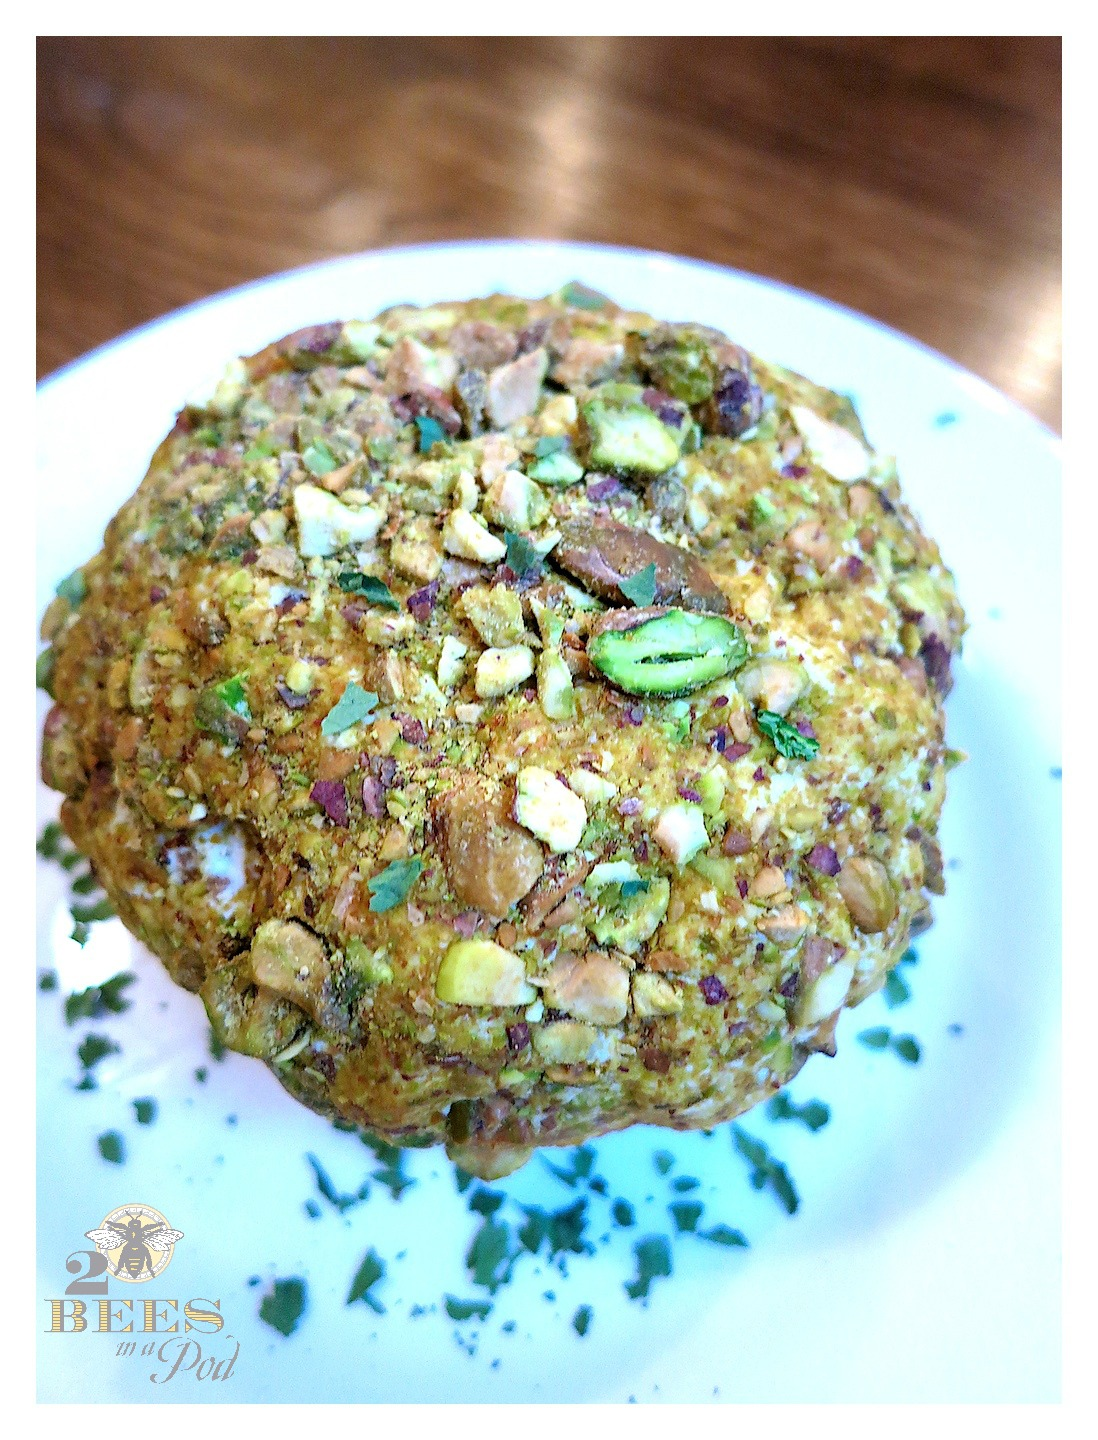 Delicious Appetizer or Treat - Goat Cheese, Bacon and Pistachio Cheese Ball. Super easy and quick to make!